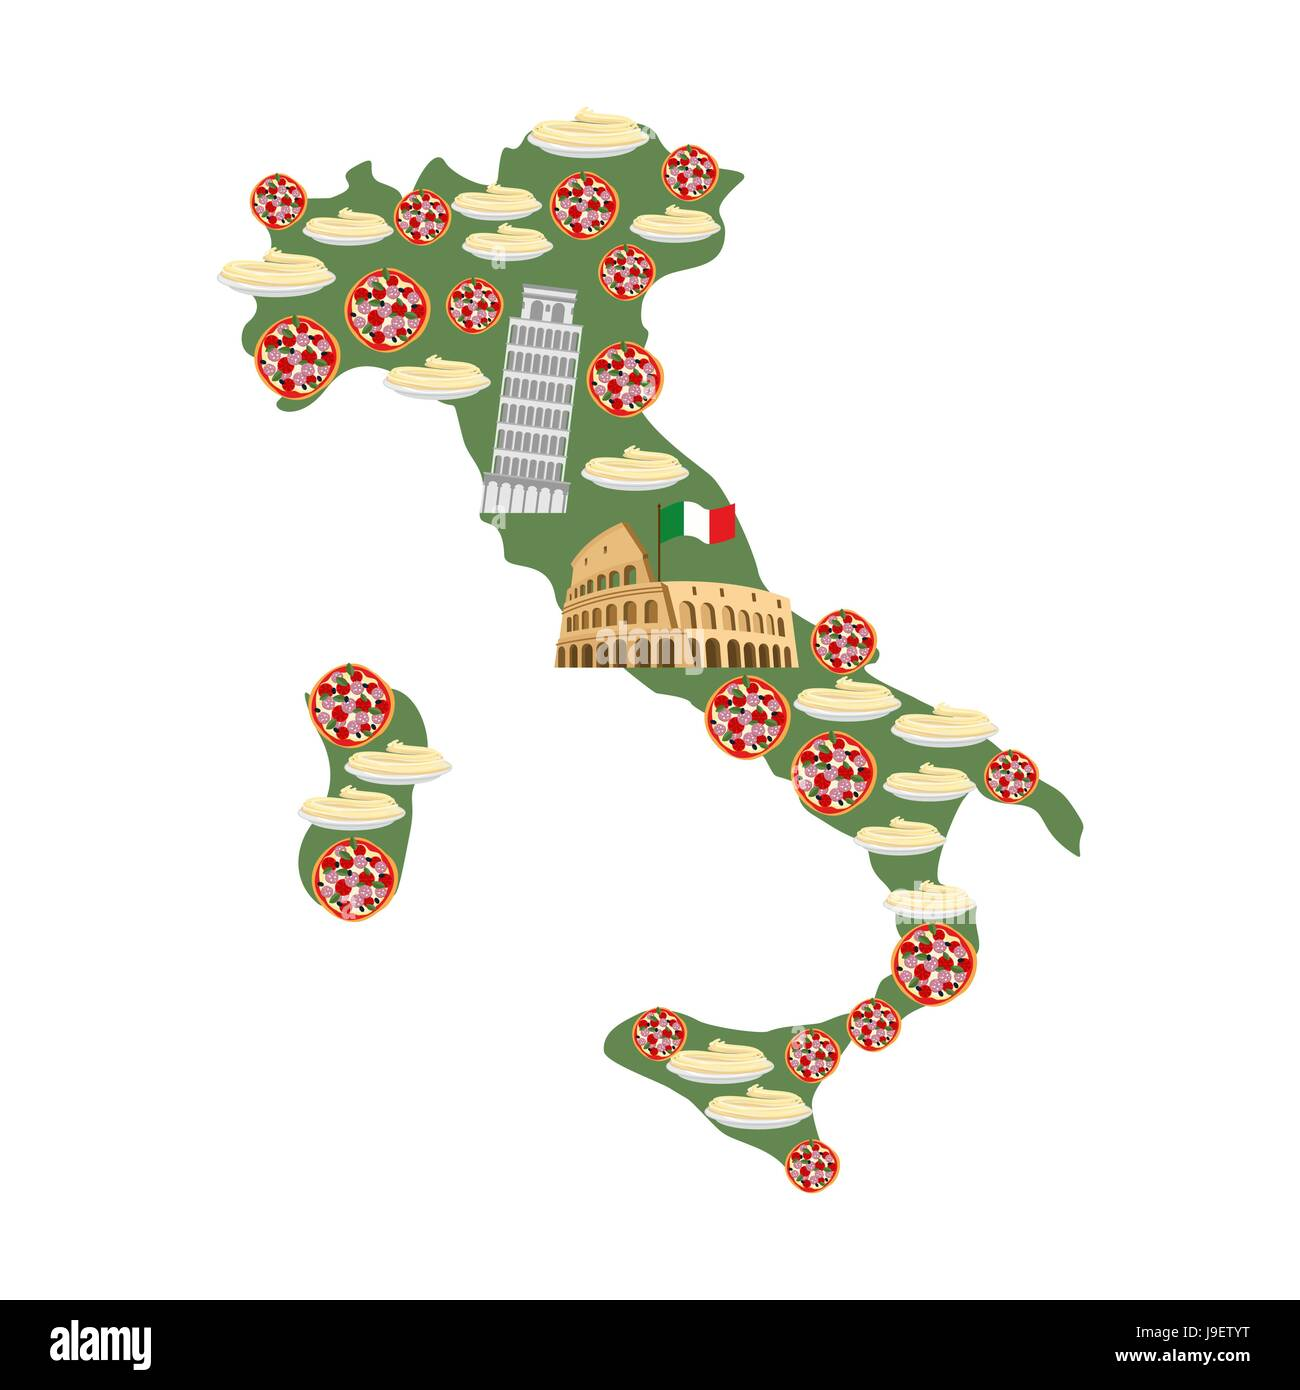 Worksheet. Map of Italy Traditional Italian food symbols Pizza and pasta